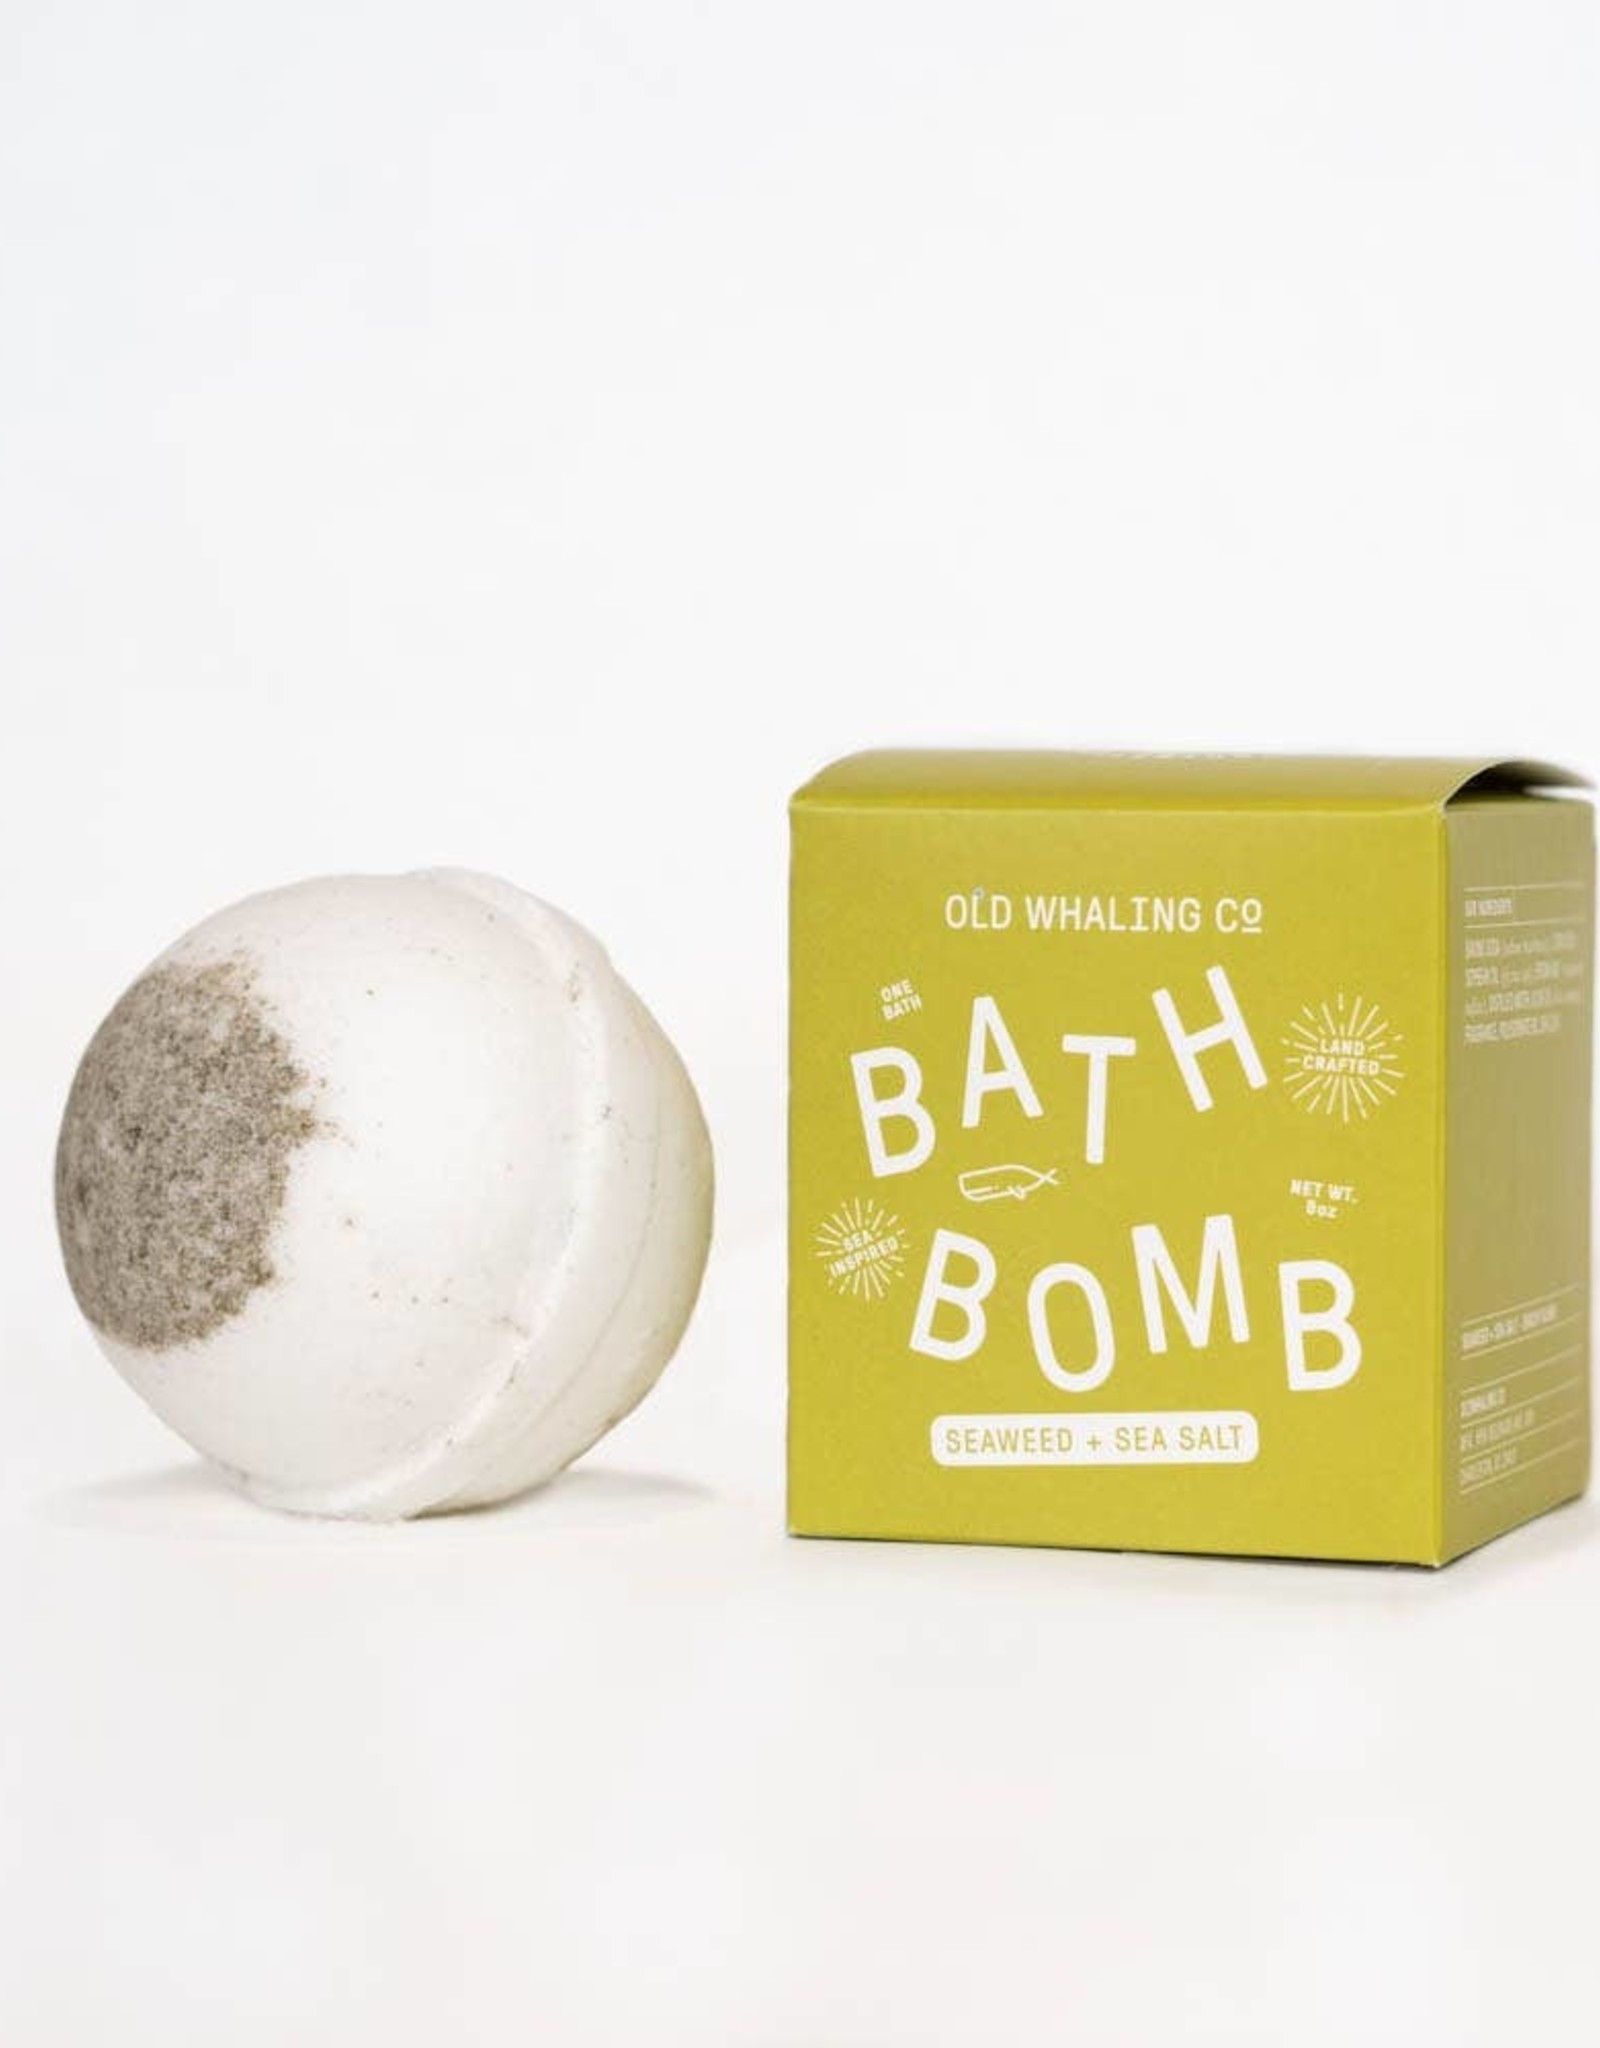 Old Whaling Company Old Whaling Bath Bomb Seaweed and Sea Salt